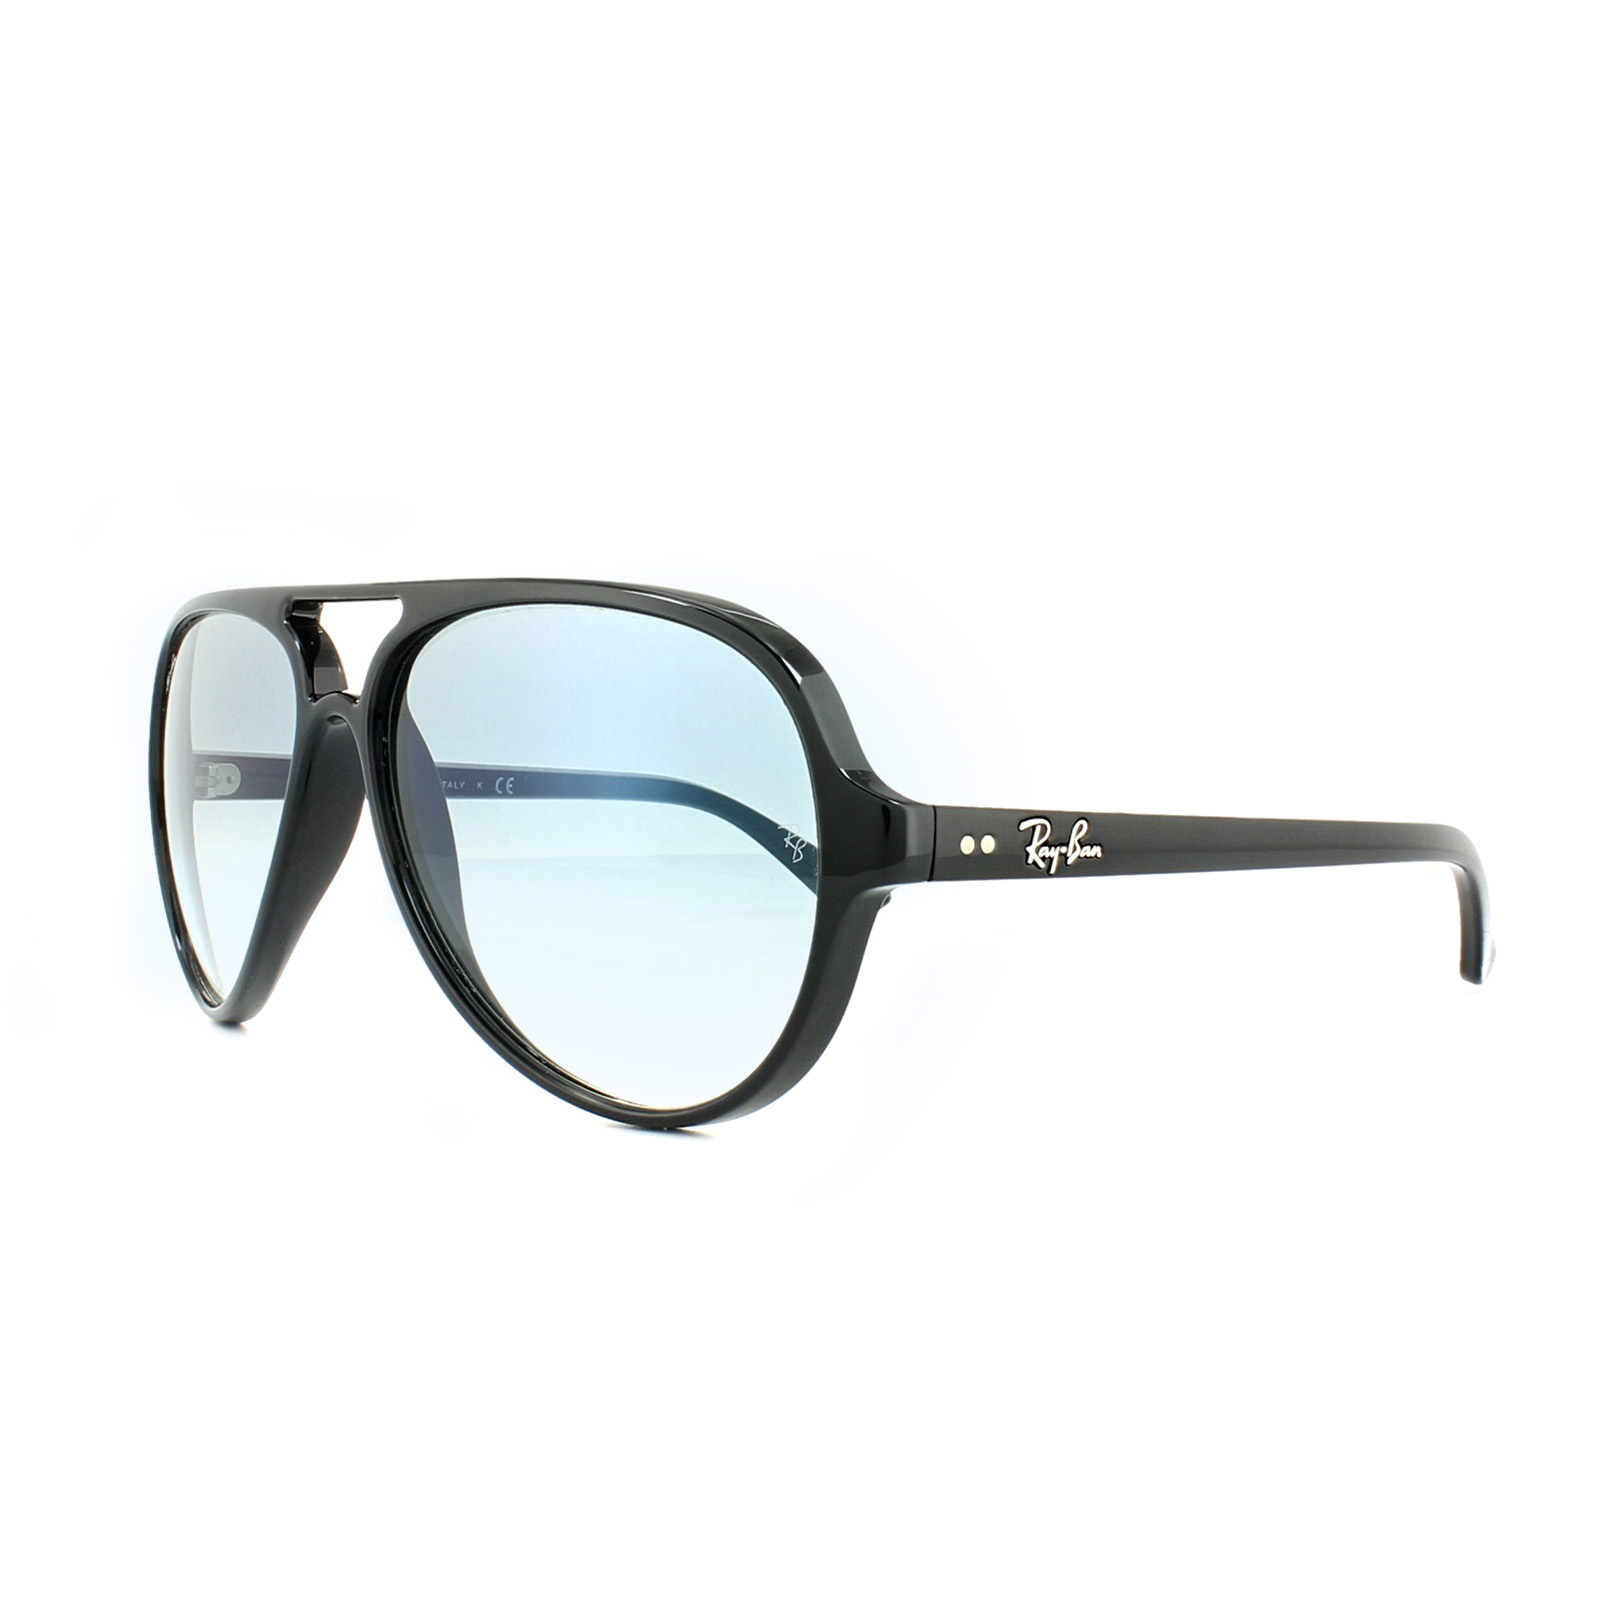 9c720bd1e8 Details about Ray-Ban Sunglasses Cats 5000 4125 601 3F Black Light Blue  Gradient